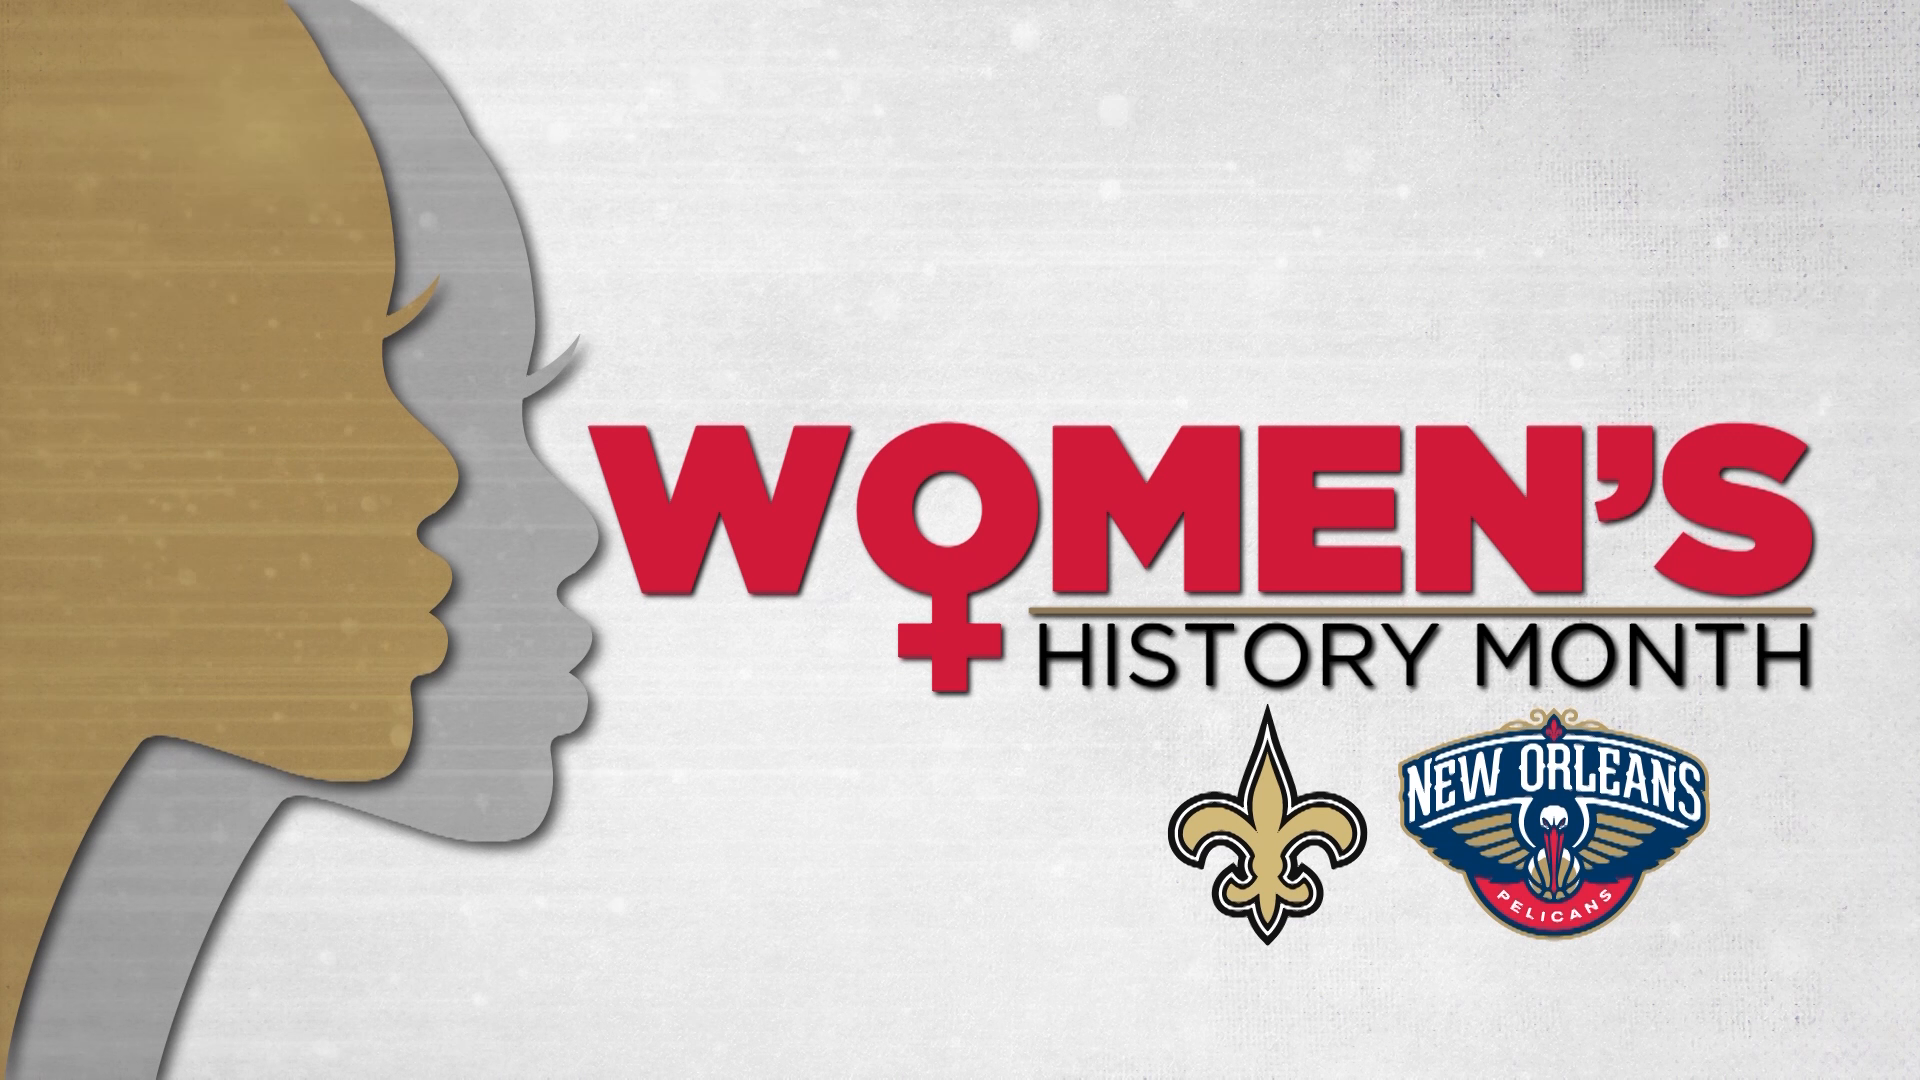 Pelicans & Saints staff celebrate International Women's Day 2021